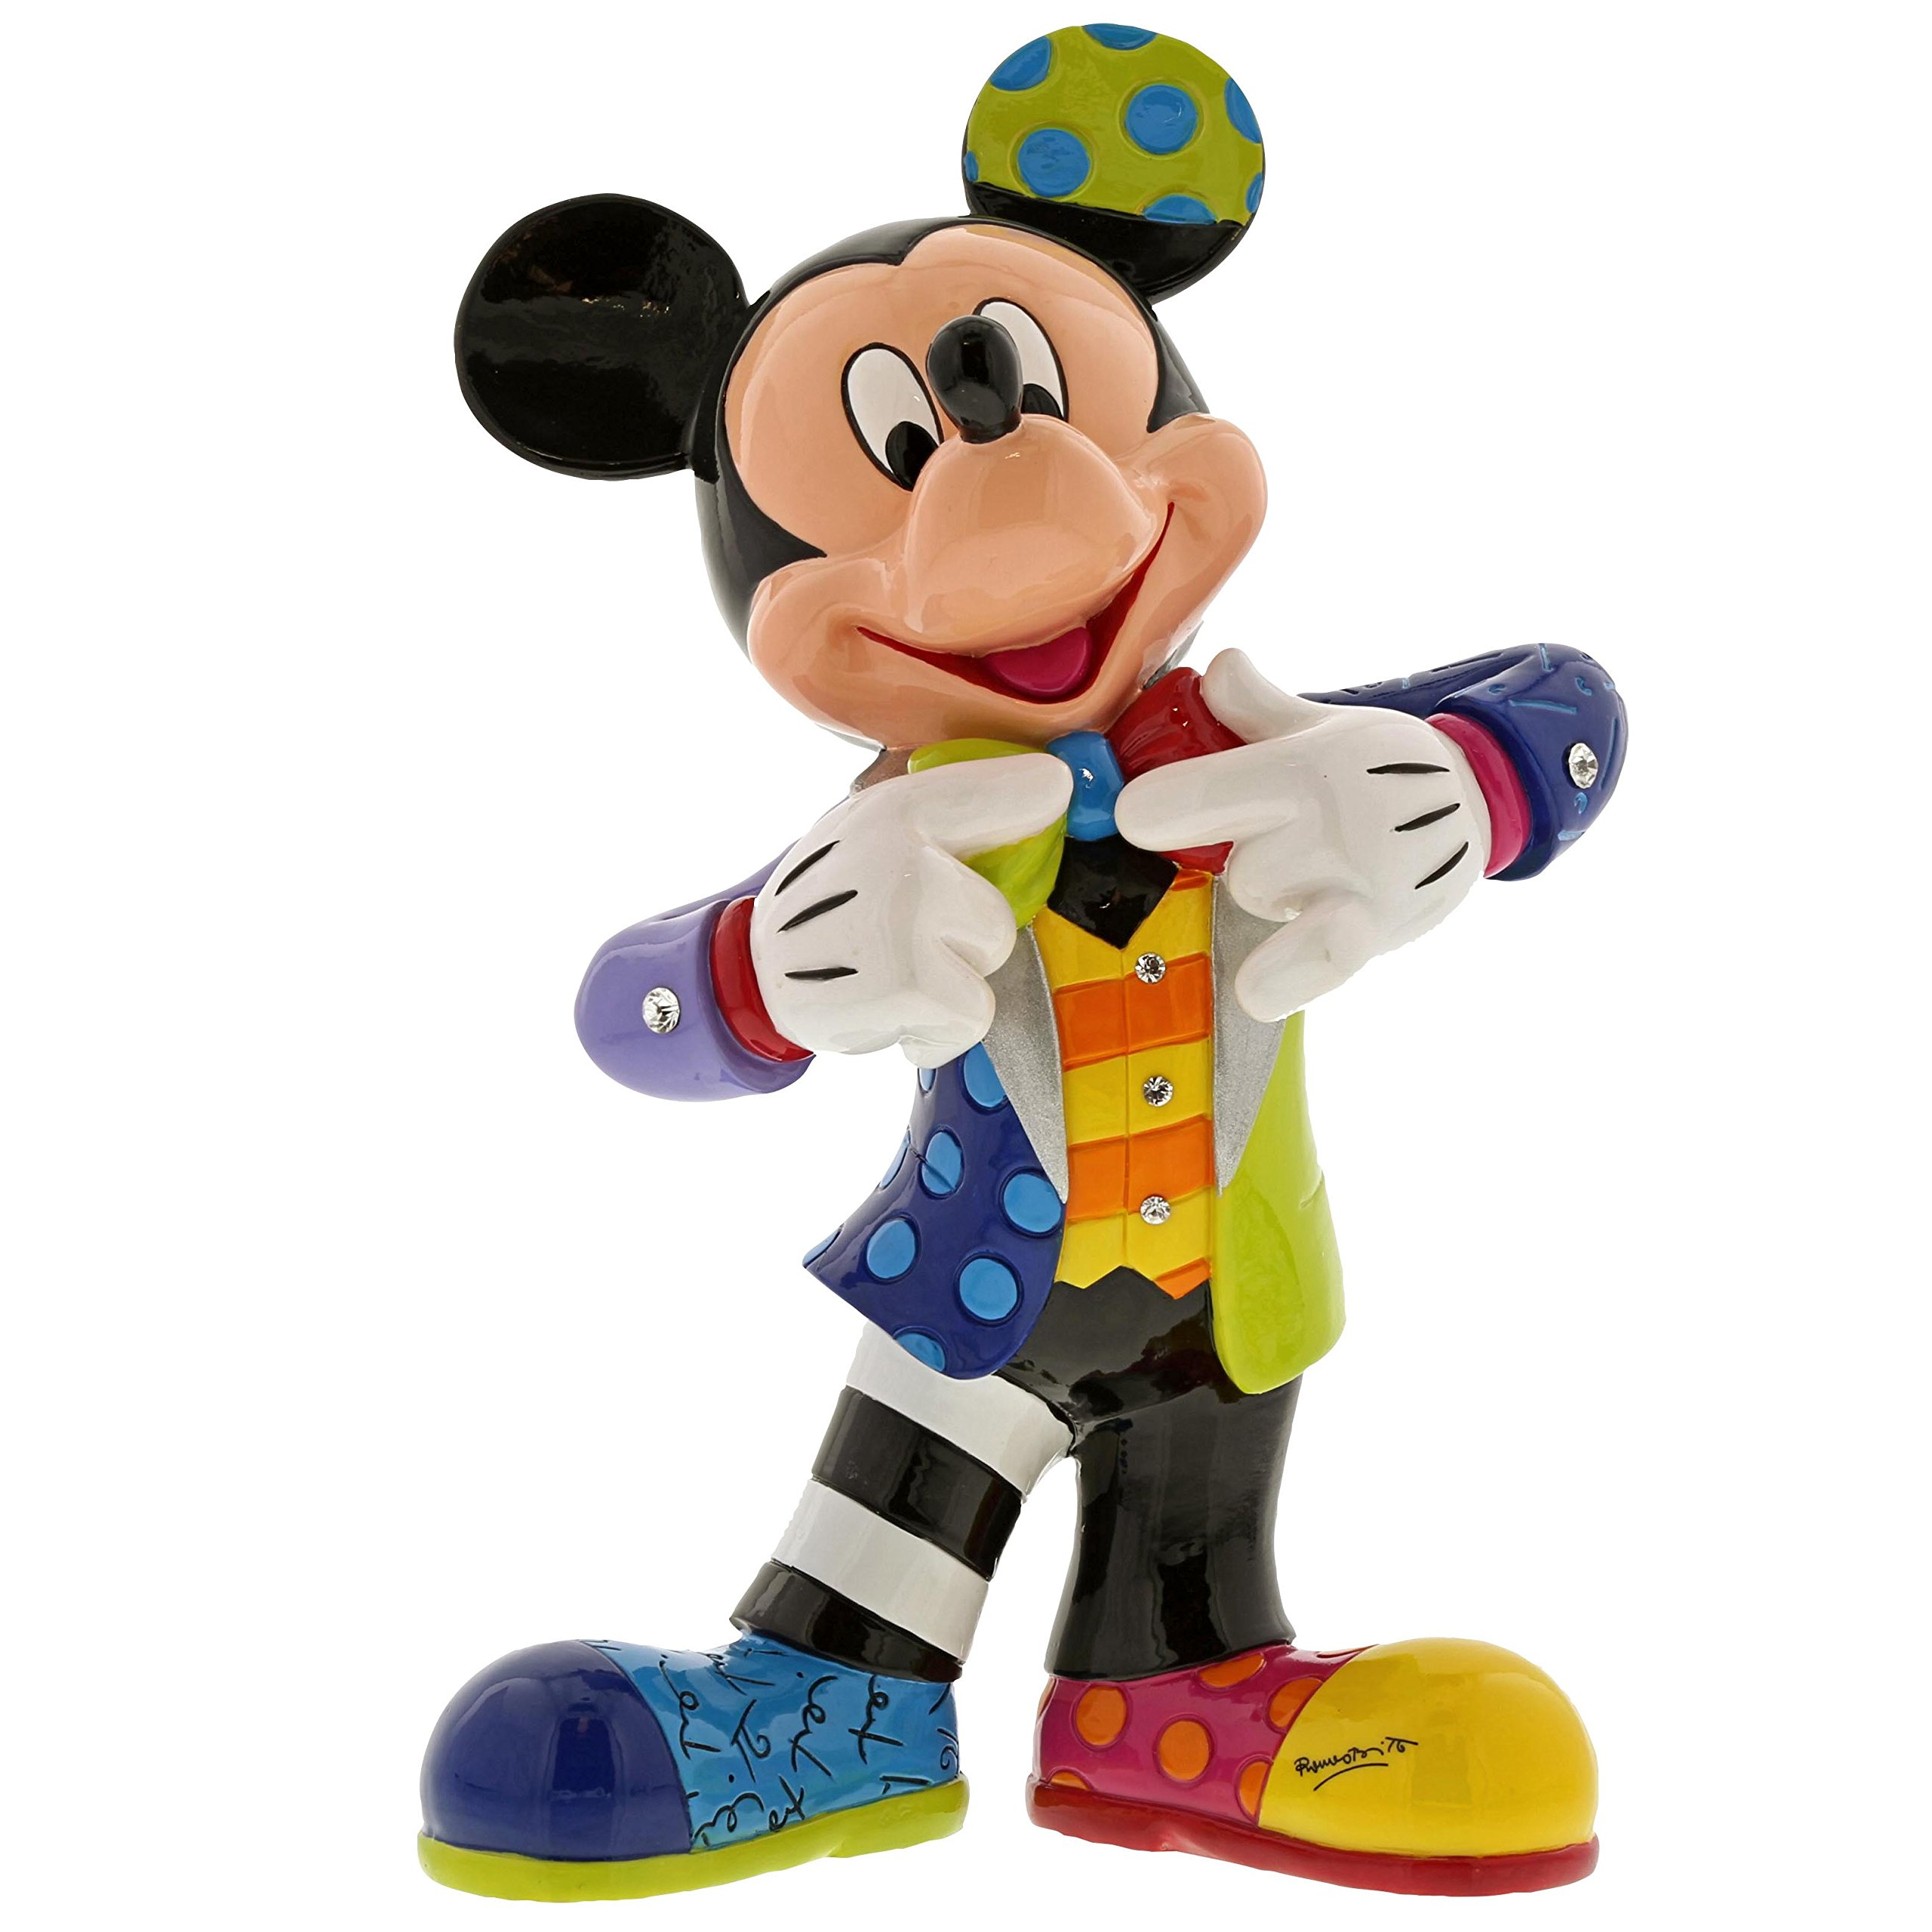 Enesco Disney by Britto Mickey Mouse with Bling 90th Celebration, 10.5'' Stone Resin Figurine, Multicolor